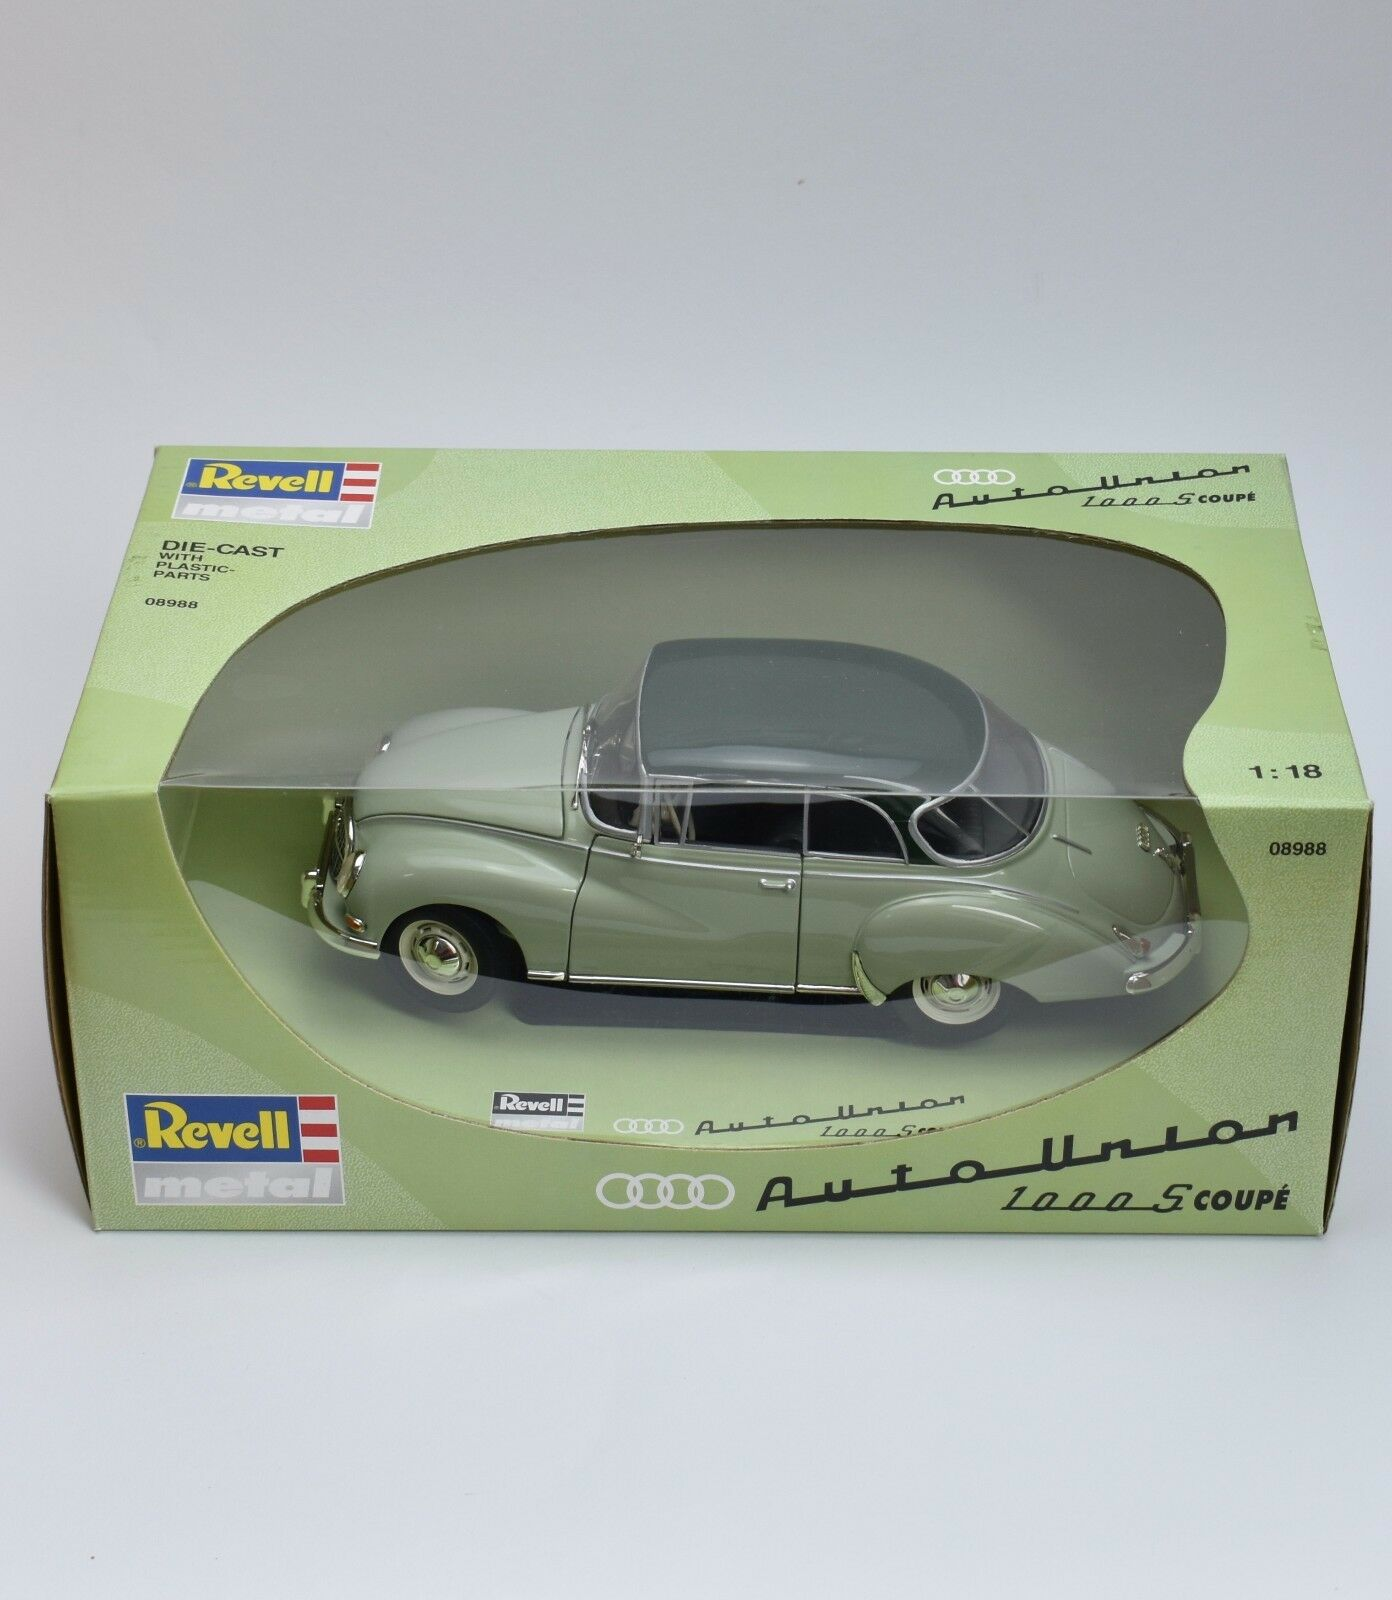 REVELL 08988 Auto Union 1000s SPORT COUPE in verde laccati, OVP, 1 18, k007